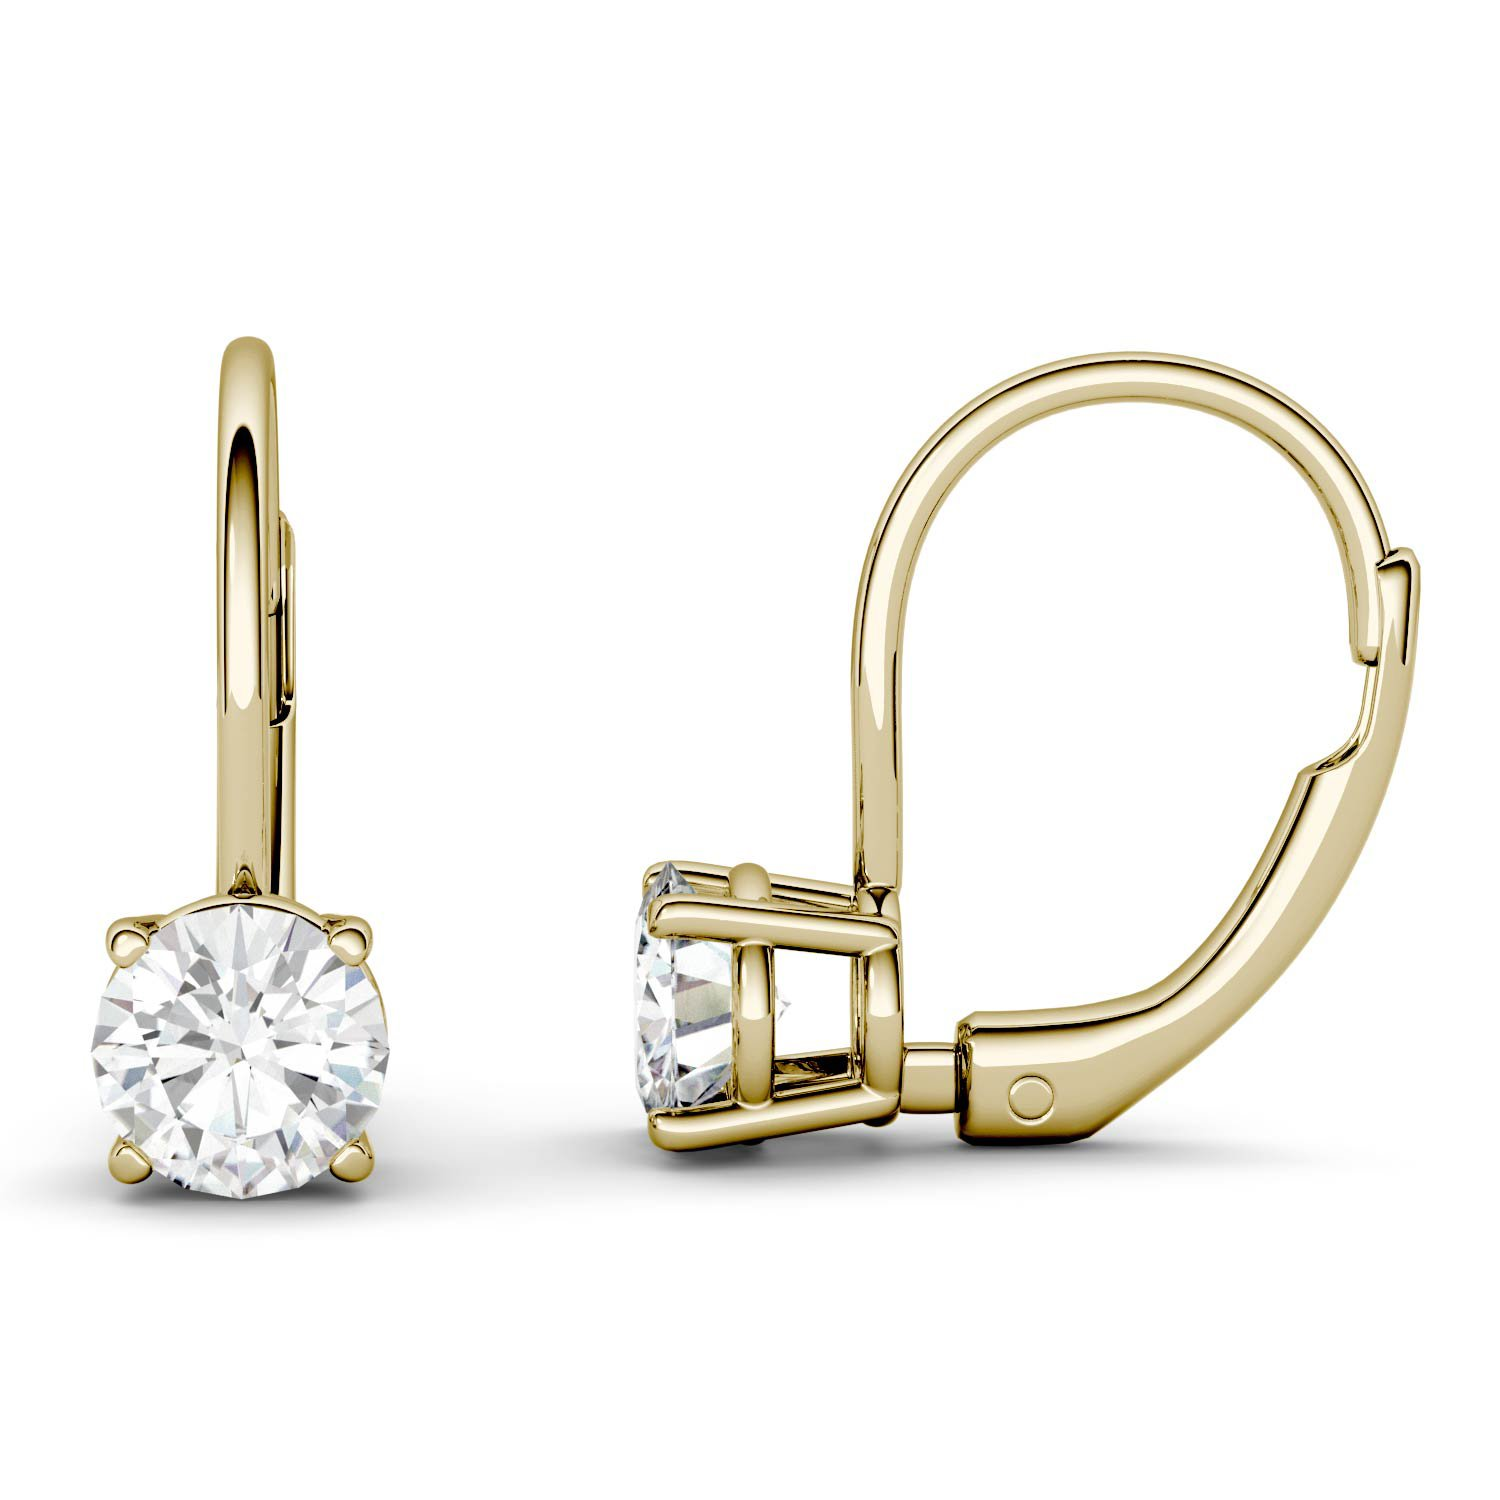 Forever Brilliant 5.0mm Round Moissanite Drop Earrings, 1.00cttw DEW By Charles & Colvard